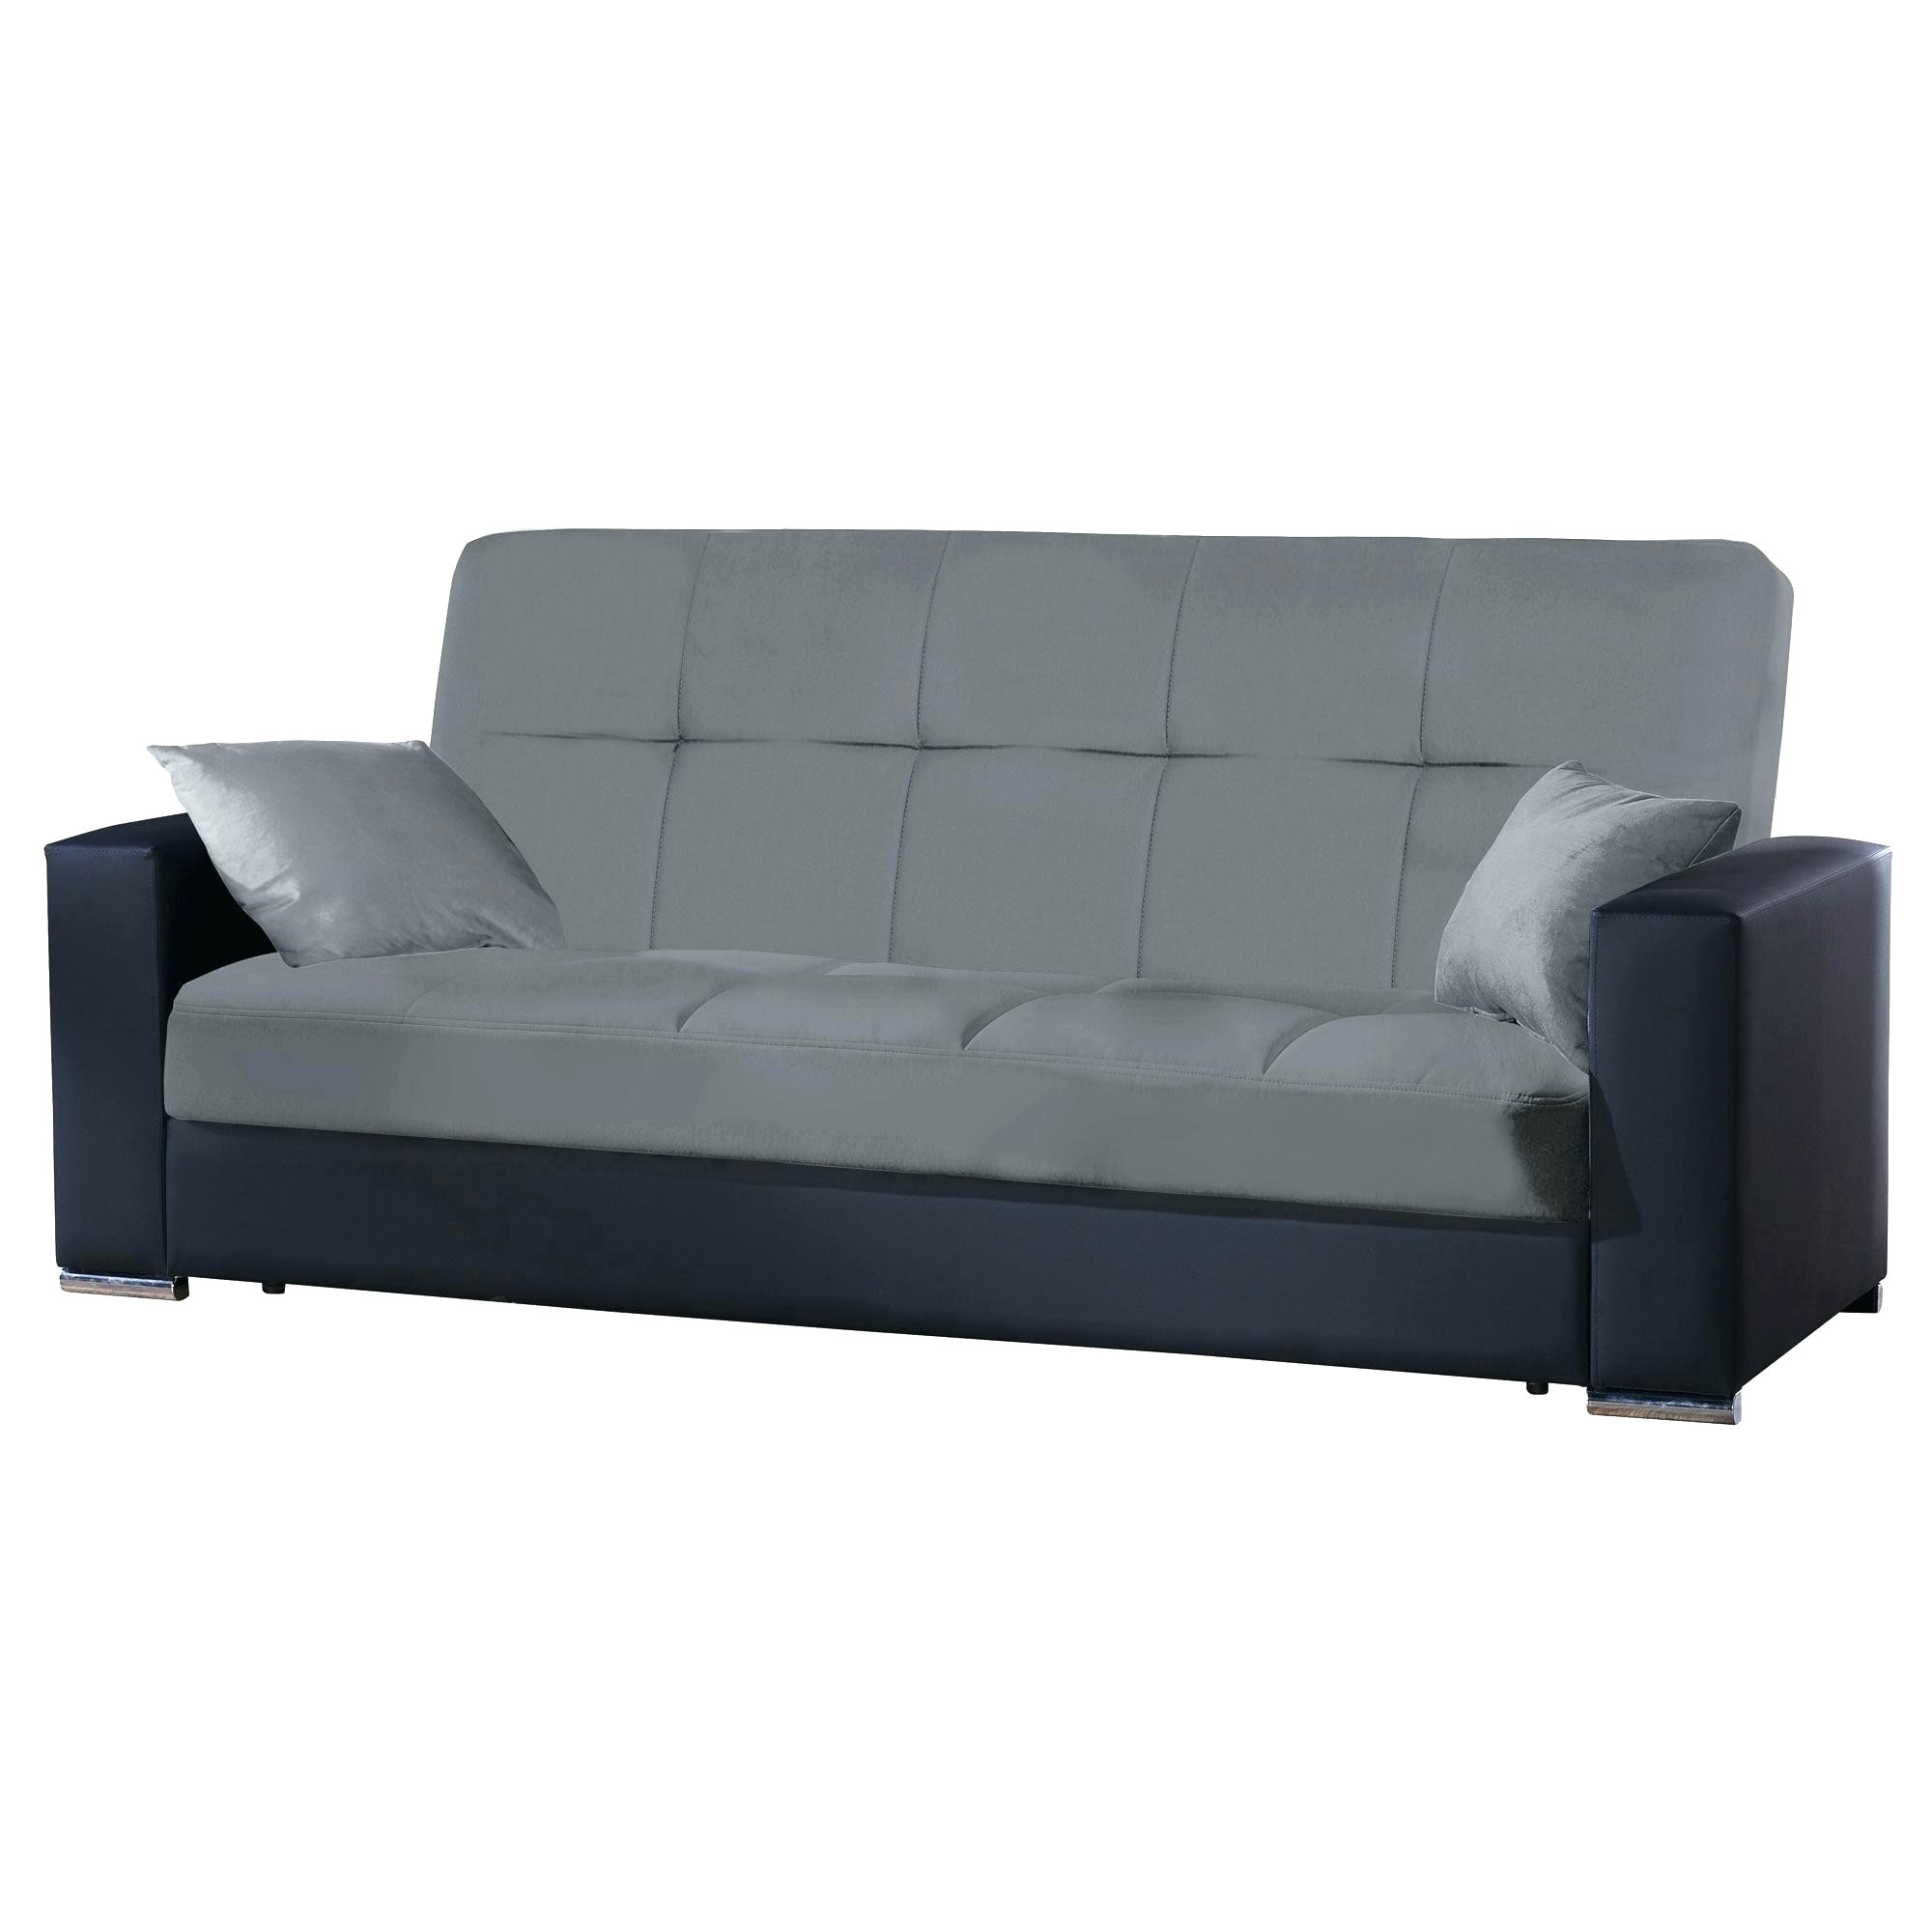 Canapé Simili Cuir Fly Inspirant Photos Canap Convertible 3 Places Conforama 11 Lit 2 Pas Cher Ikea but